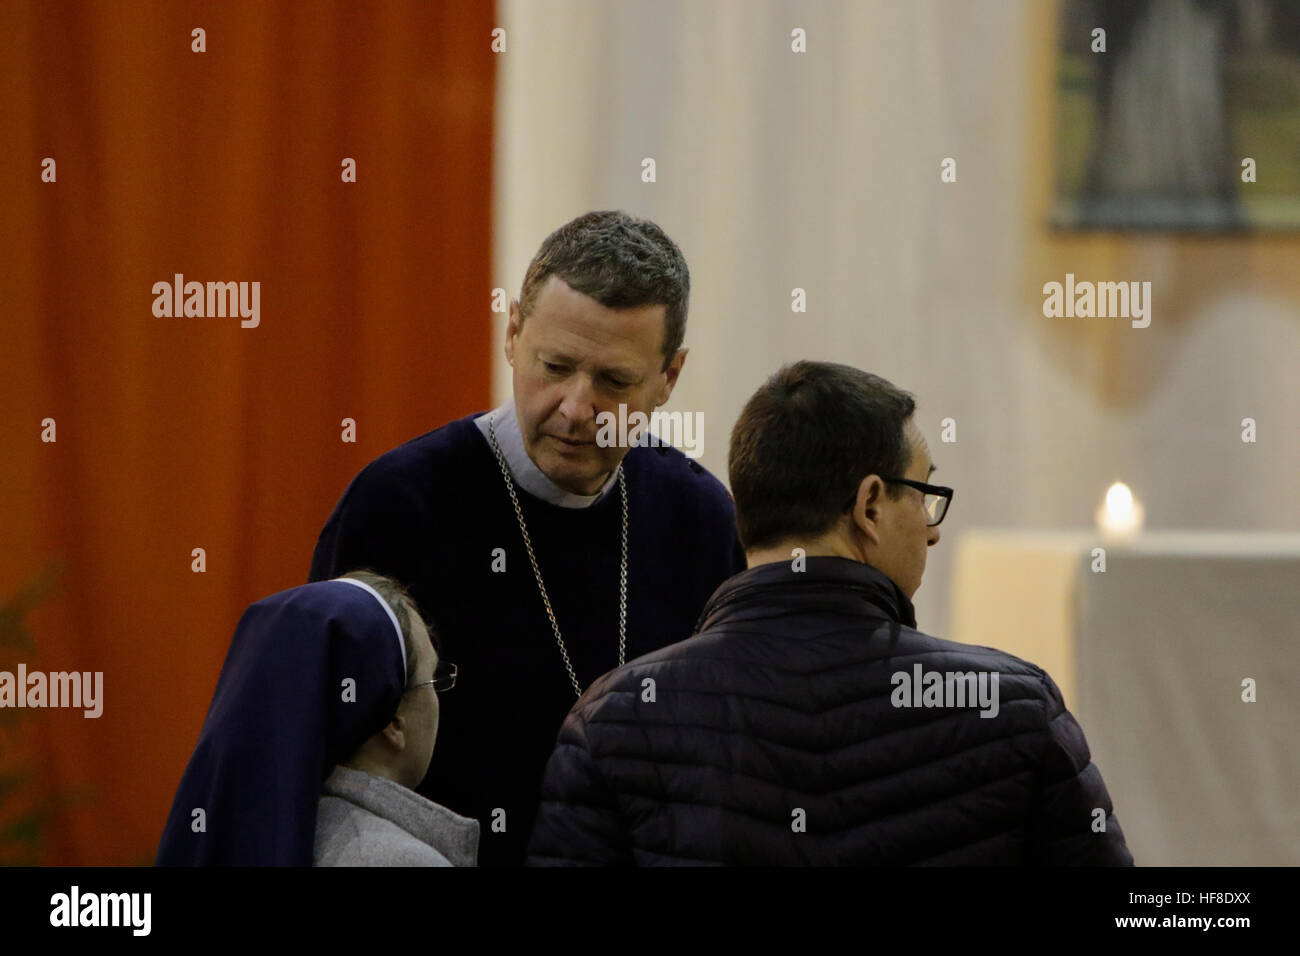 Latvia, Riga. 28th December 2016. Alain de Raemy (centre), the bishop of the Roman Catholic Diocese of Saint-Die - Stock Image